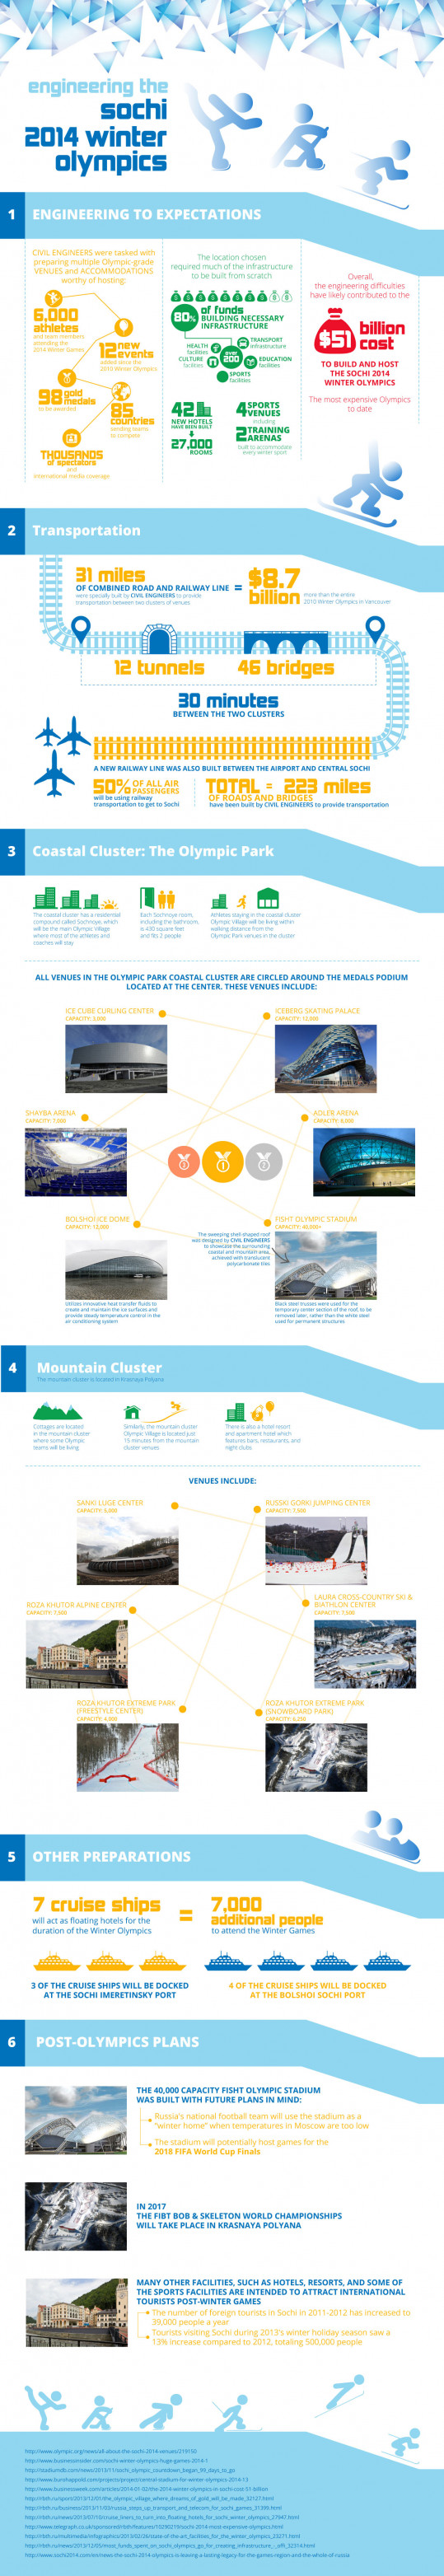 Engineering the Sochi 2014 Winter Olympics